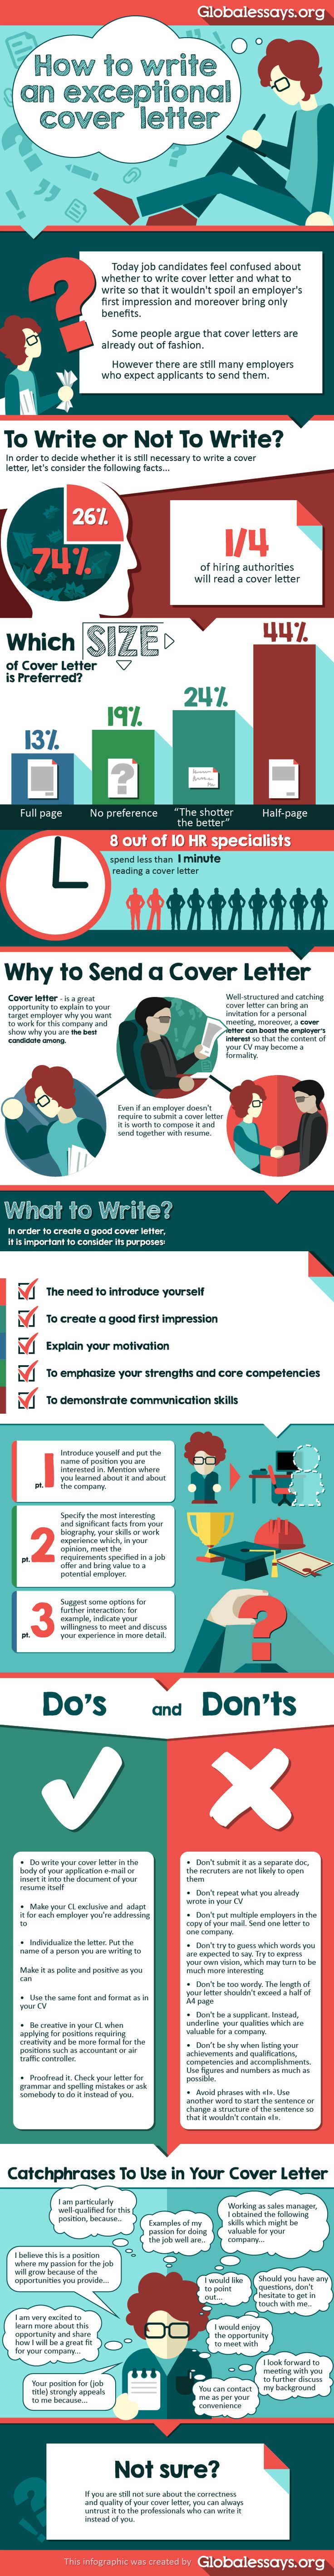 how to write an exceptional cover letter. Resume Example. Resume CV Cover Letter